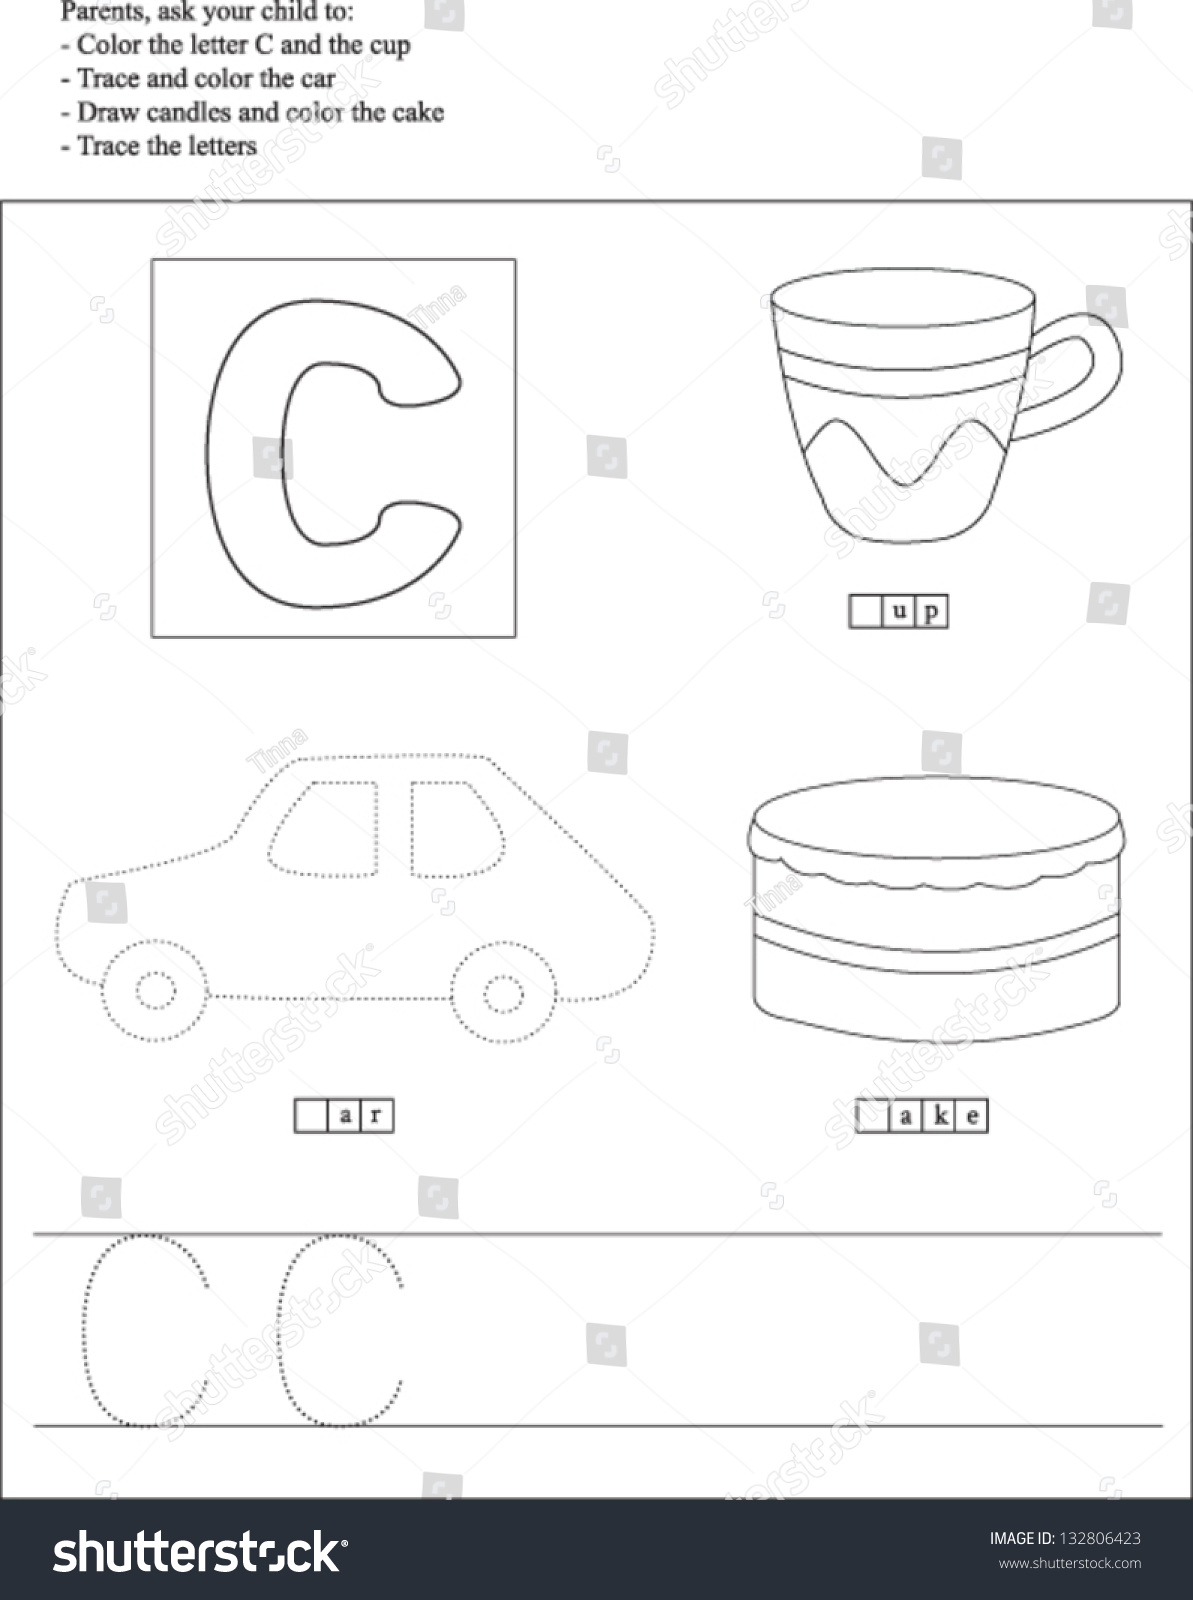 Trace And Color Letter C Worksheet For Preschoolers Stock Vector Illustration